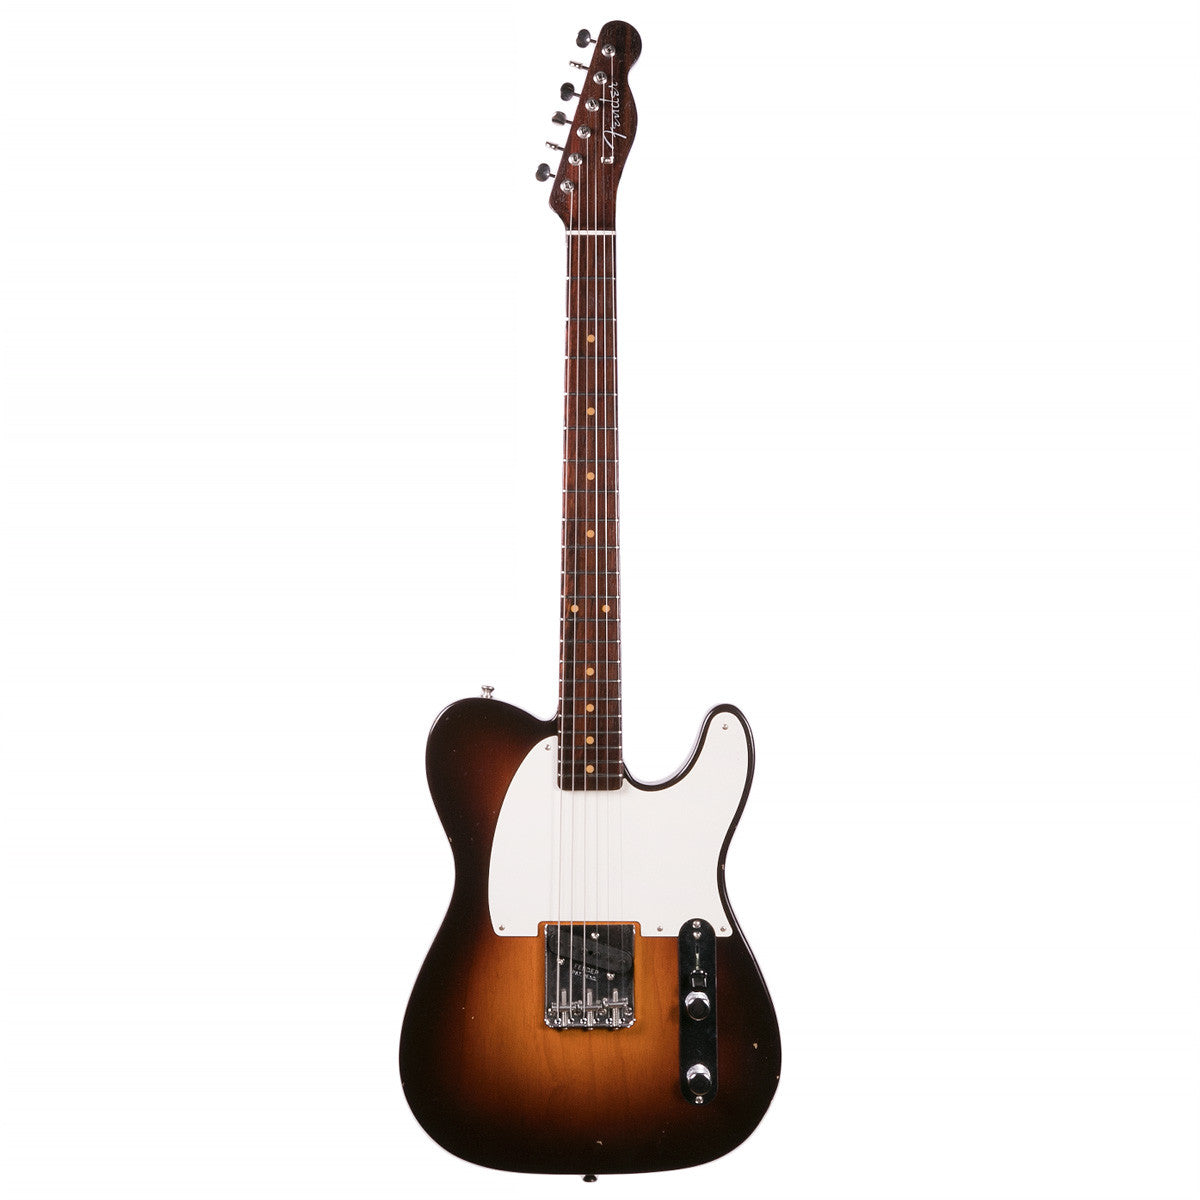 Fender Custom Shop - '57 Esquire - Limited Edition Journeyman Relic, Rosewood - Chocolate 2-tone Sunburst | Lucky Fret Music Co.